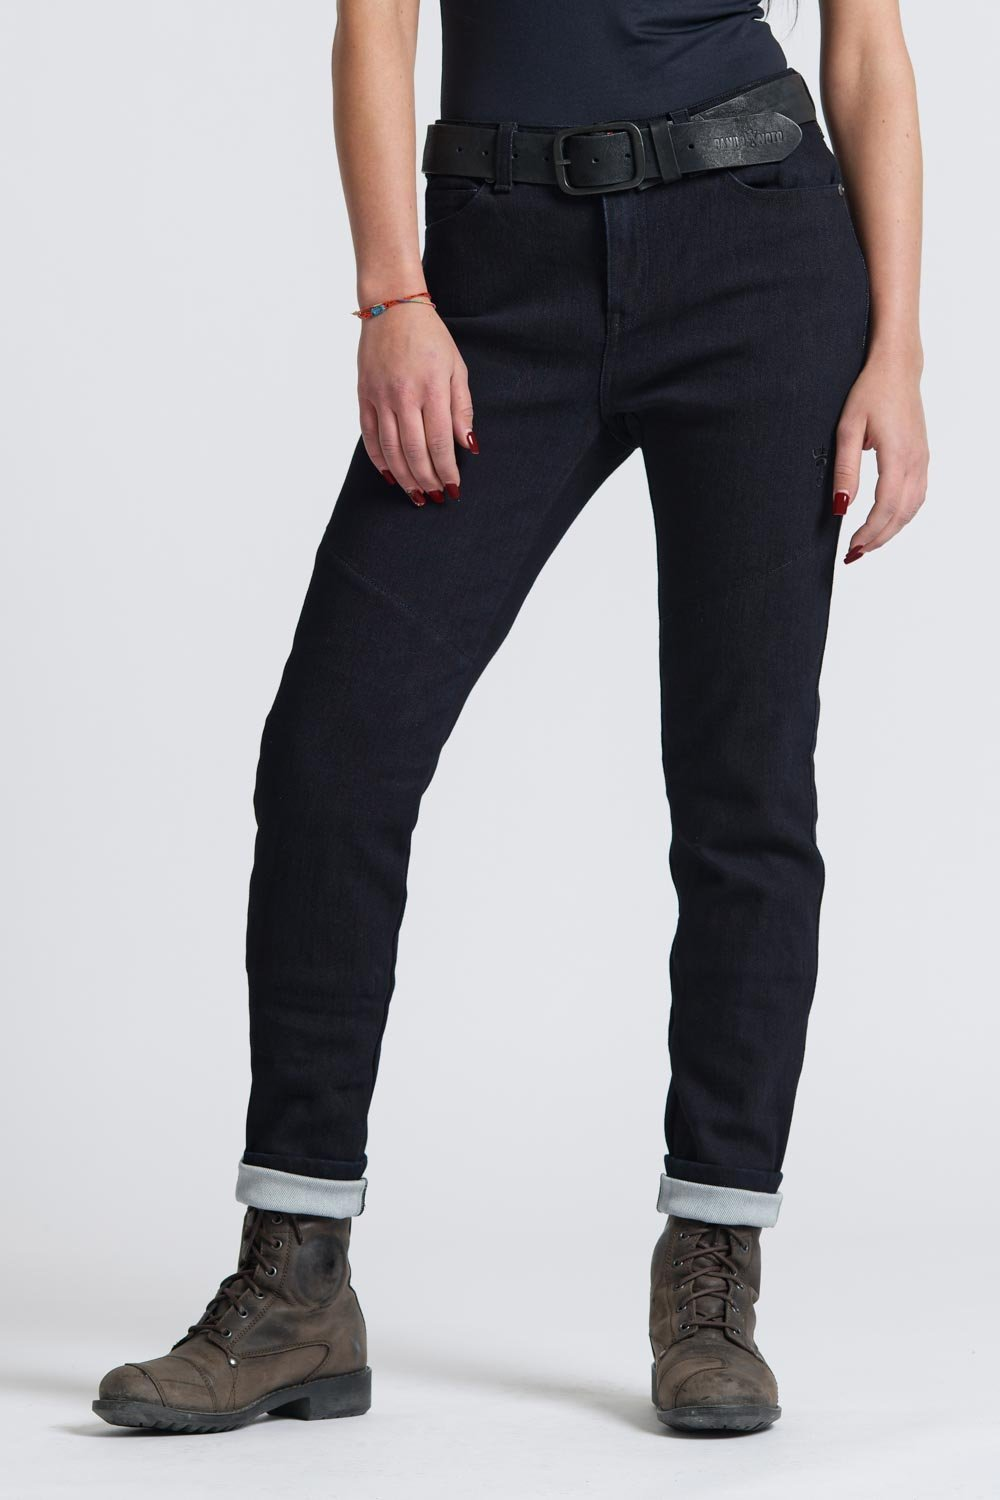 Pando Moto - Pando Moto Kissaki Ladies Black Jeans - Ladies Trousers - Salt Flats Clothing